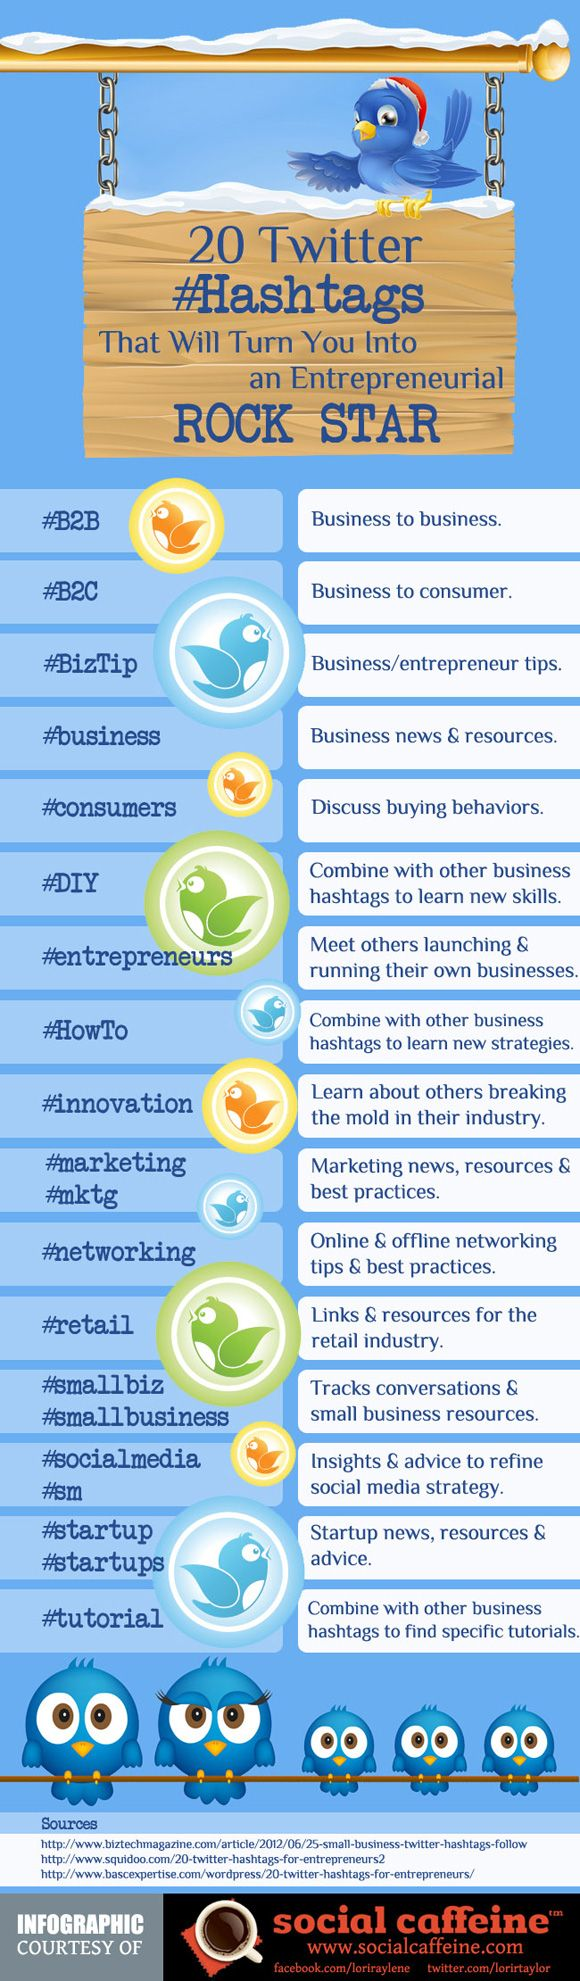 Goed om te weten: '20 #Twitter Hashtags that will turn you into an entrepreneurial rock star' #infographic by social caffeine.